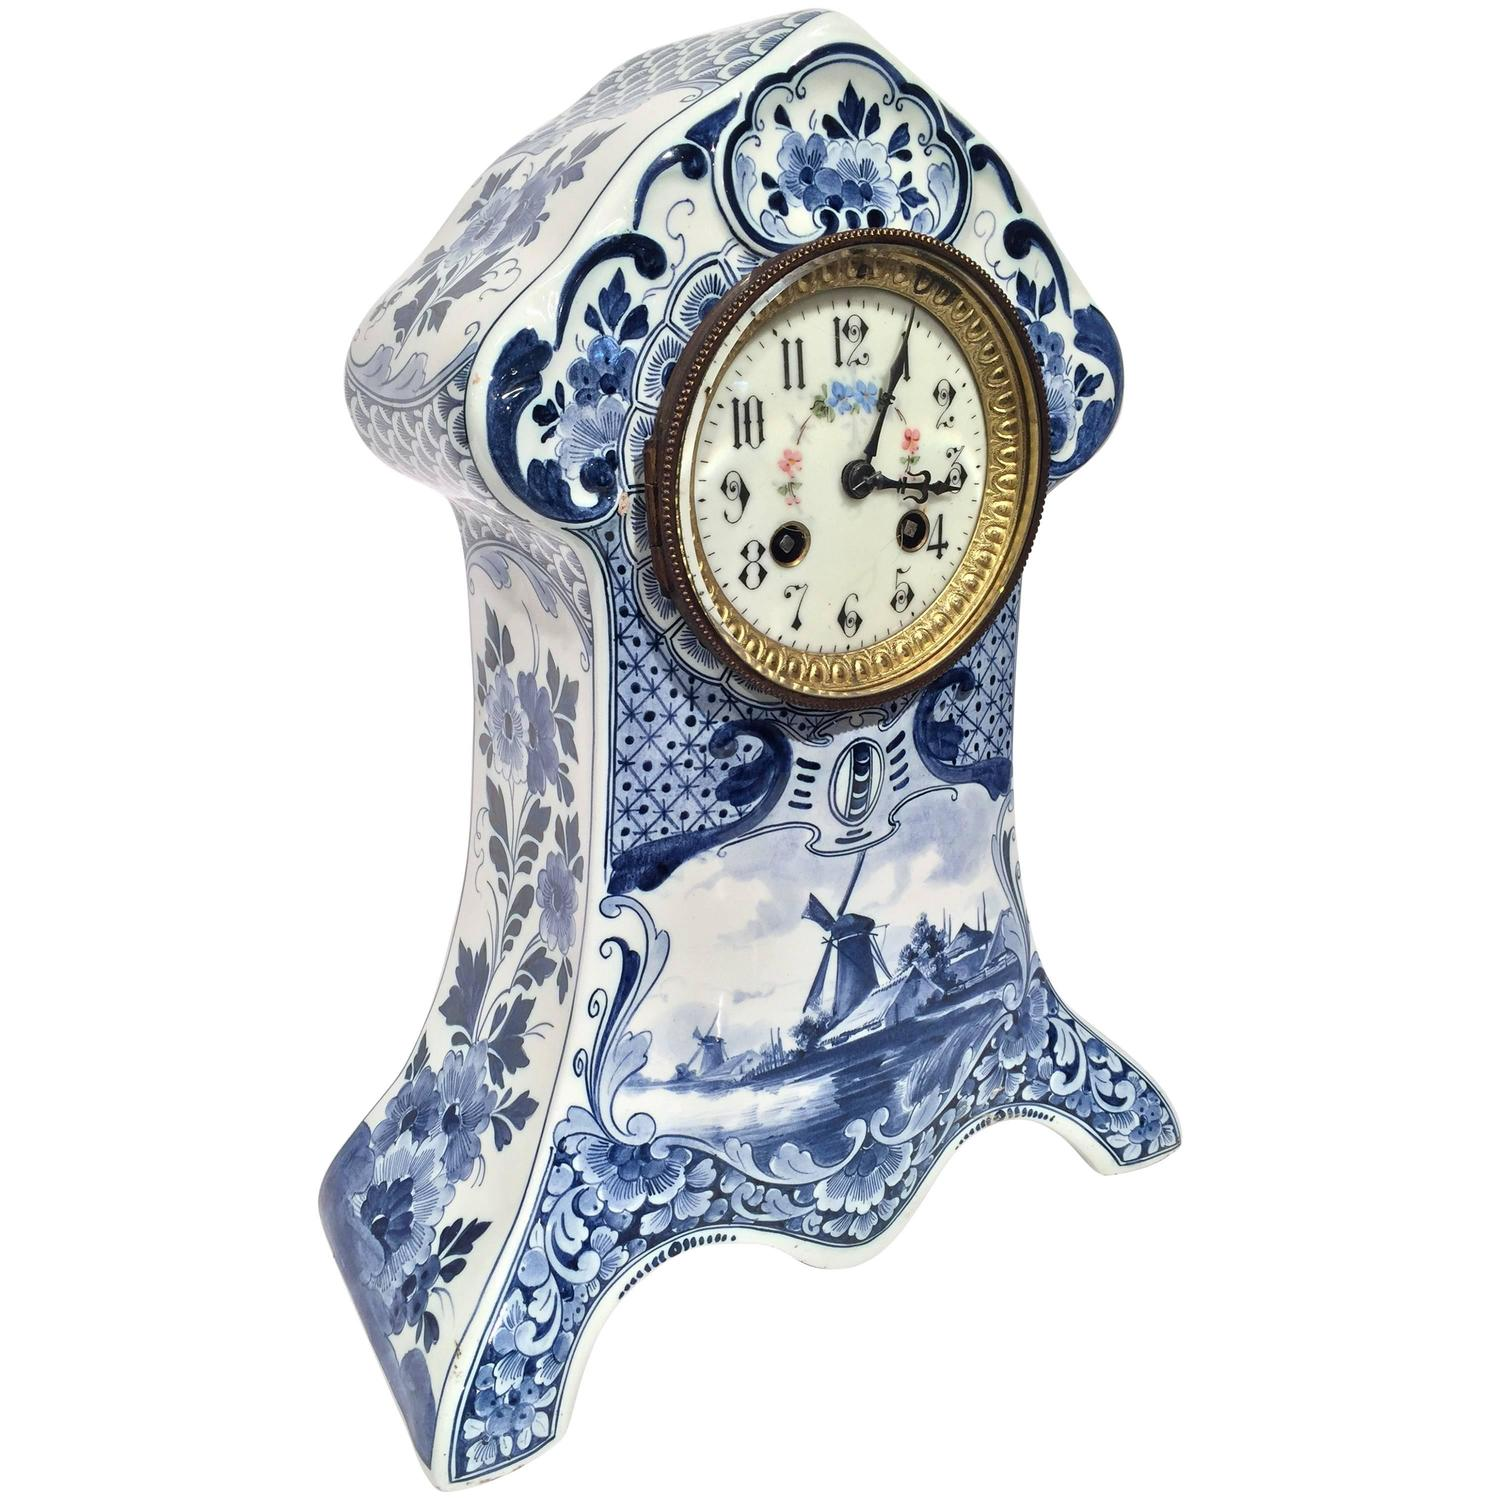 19th century blue and white handpainted delft mantel clock in working condition for sale at 1stdibs - Mantel Clock